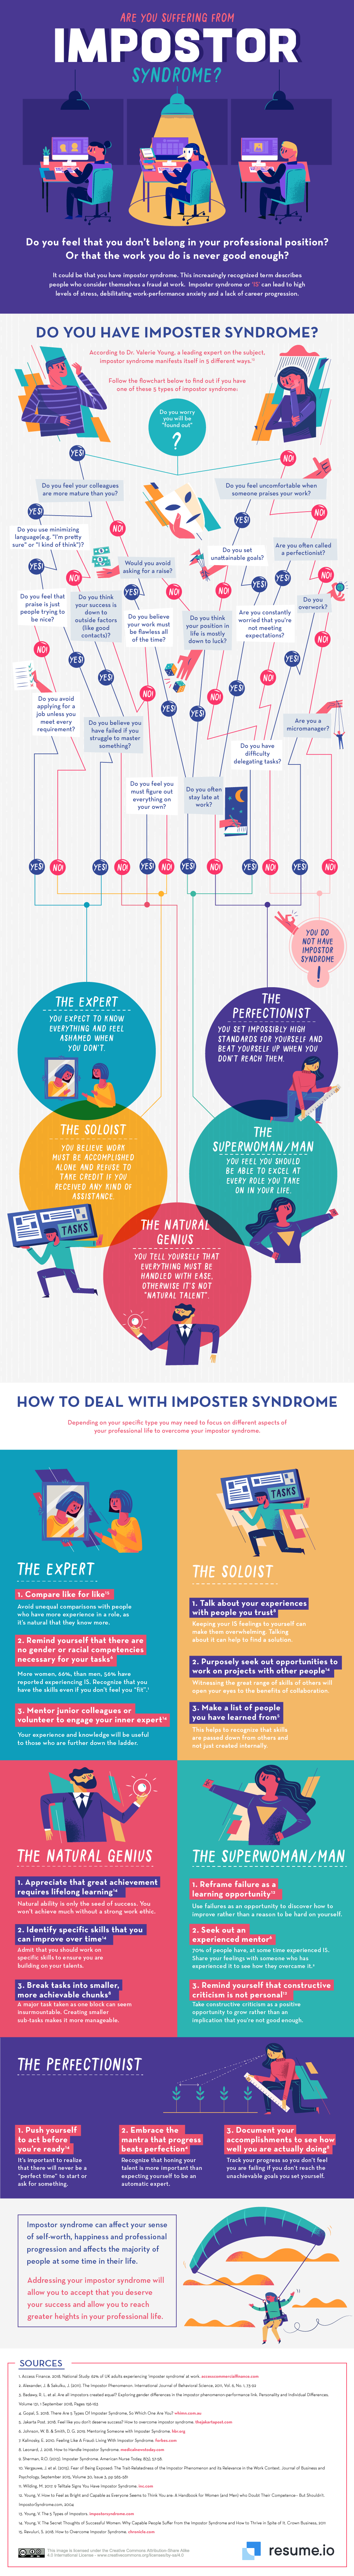 Are you suffering from impostor syndrome?